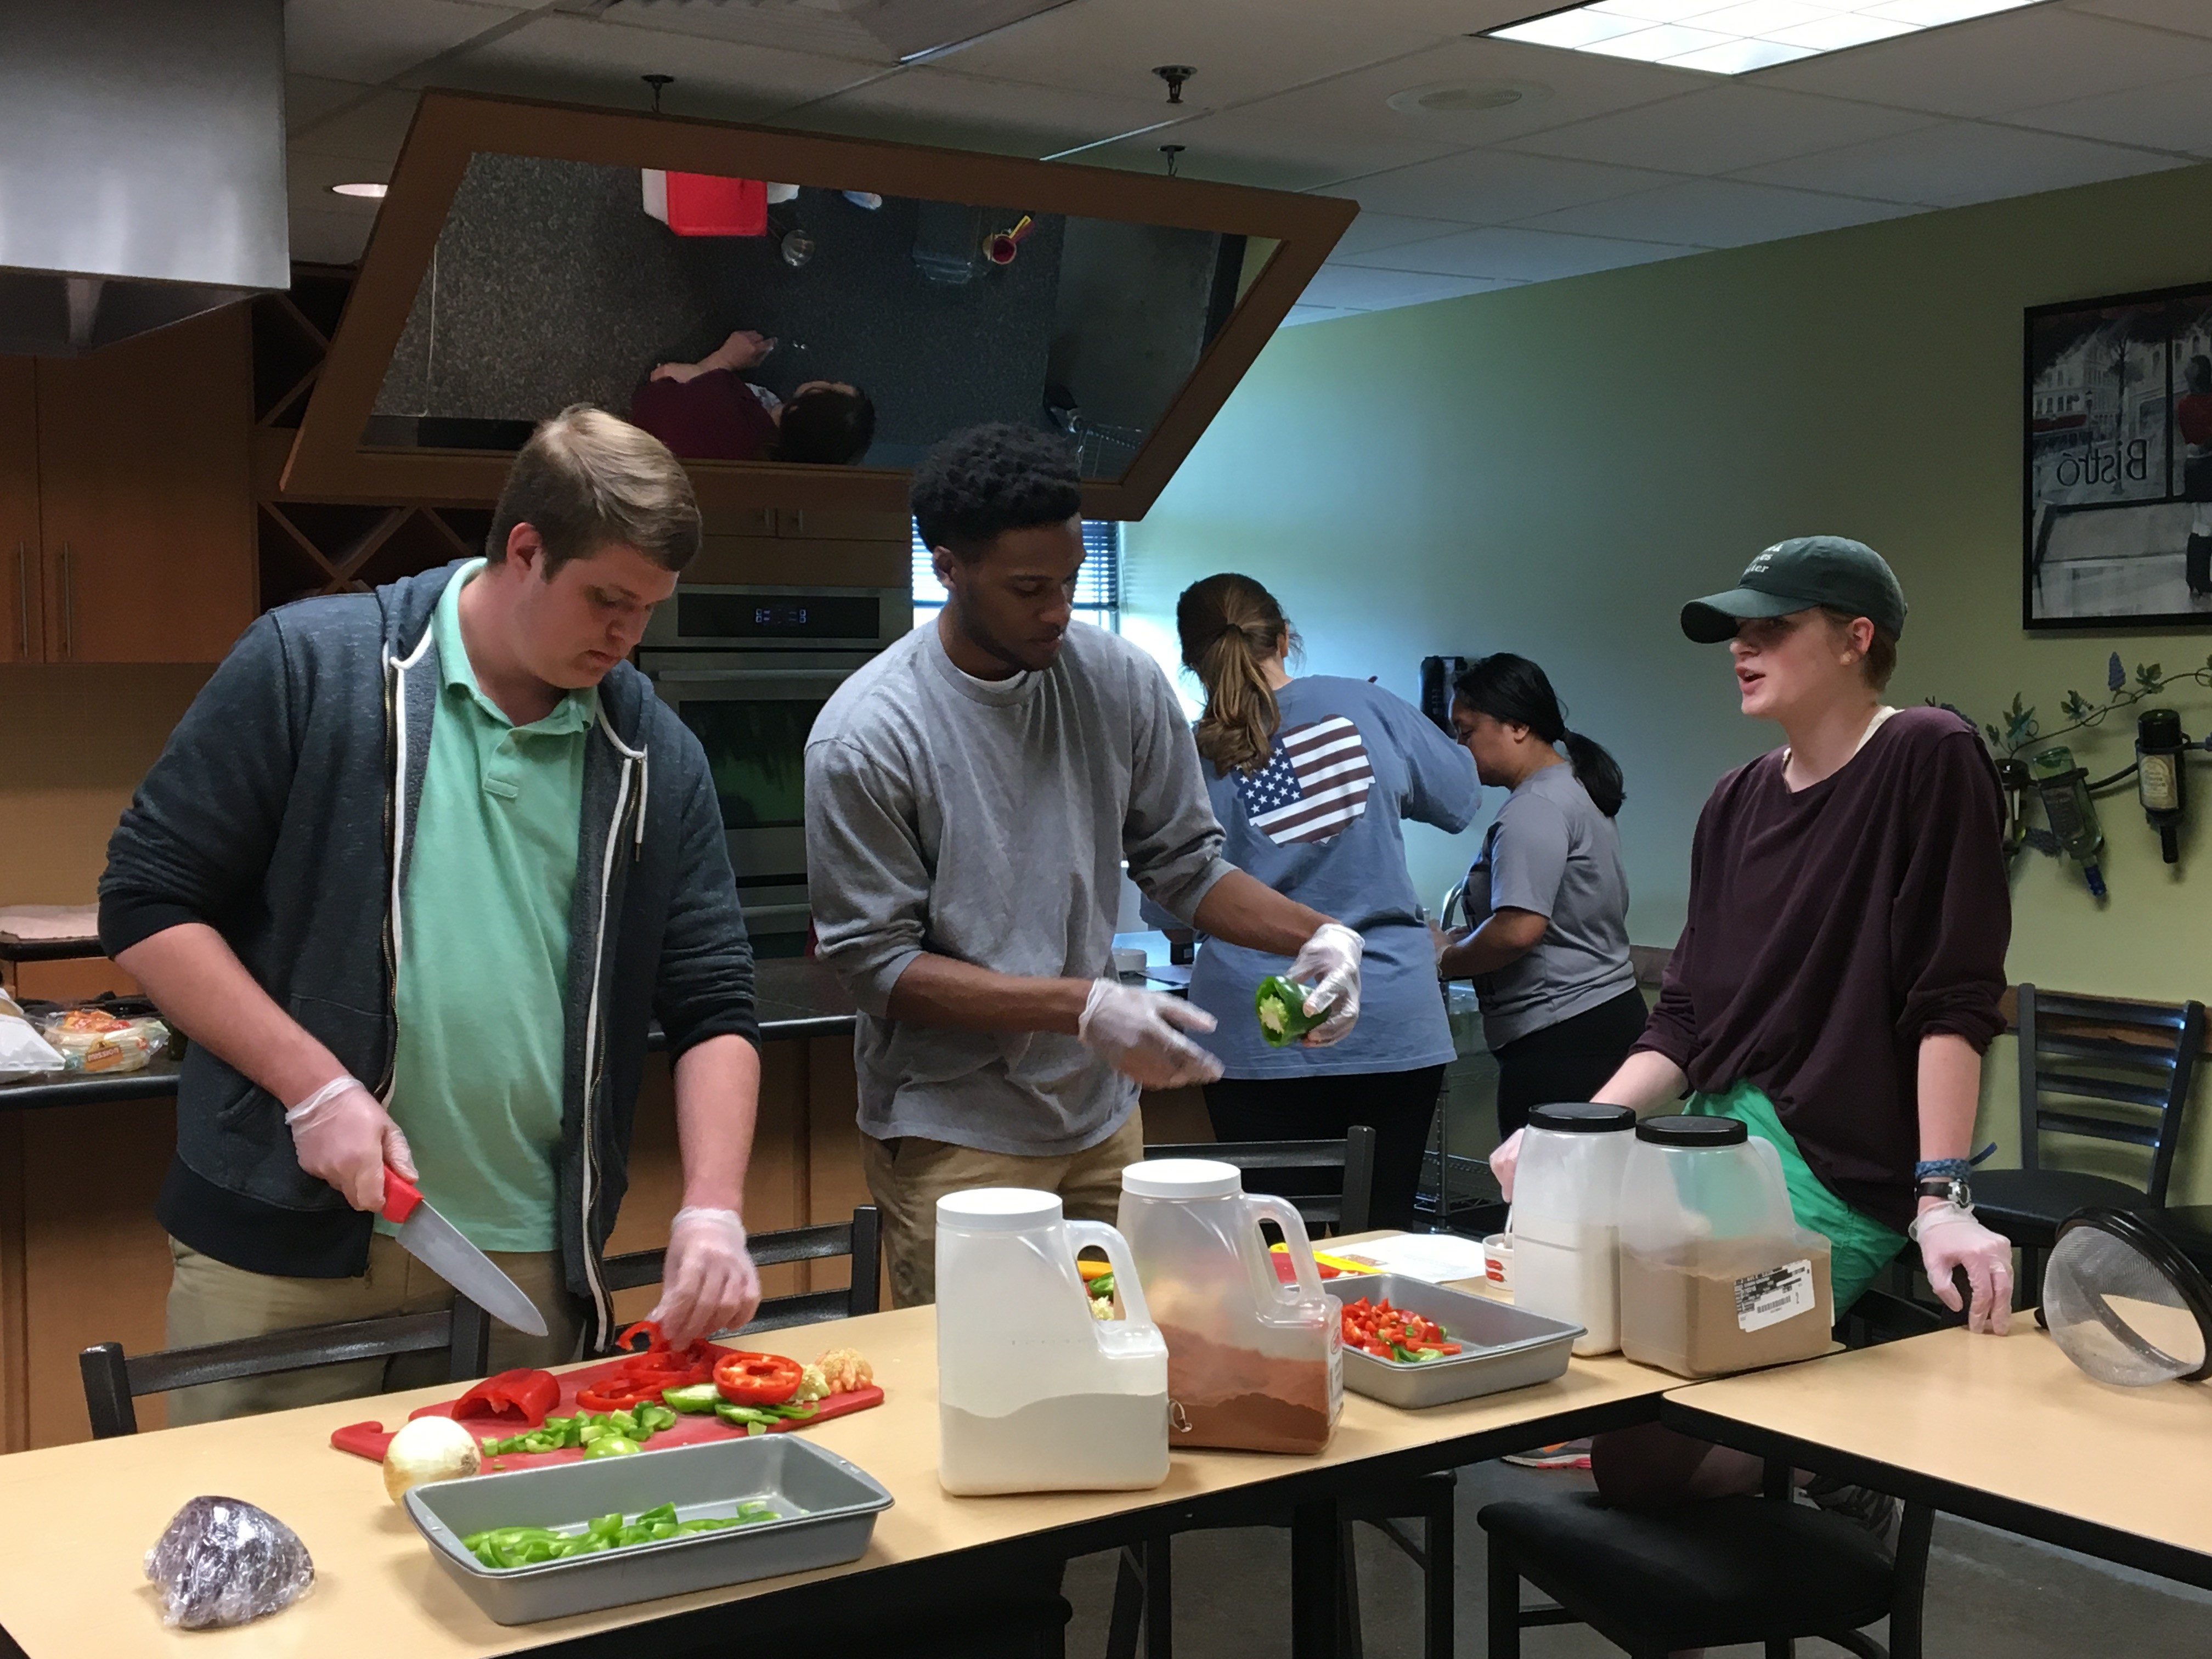 First-Year Bears Cooking class at Hy-vee